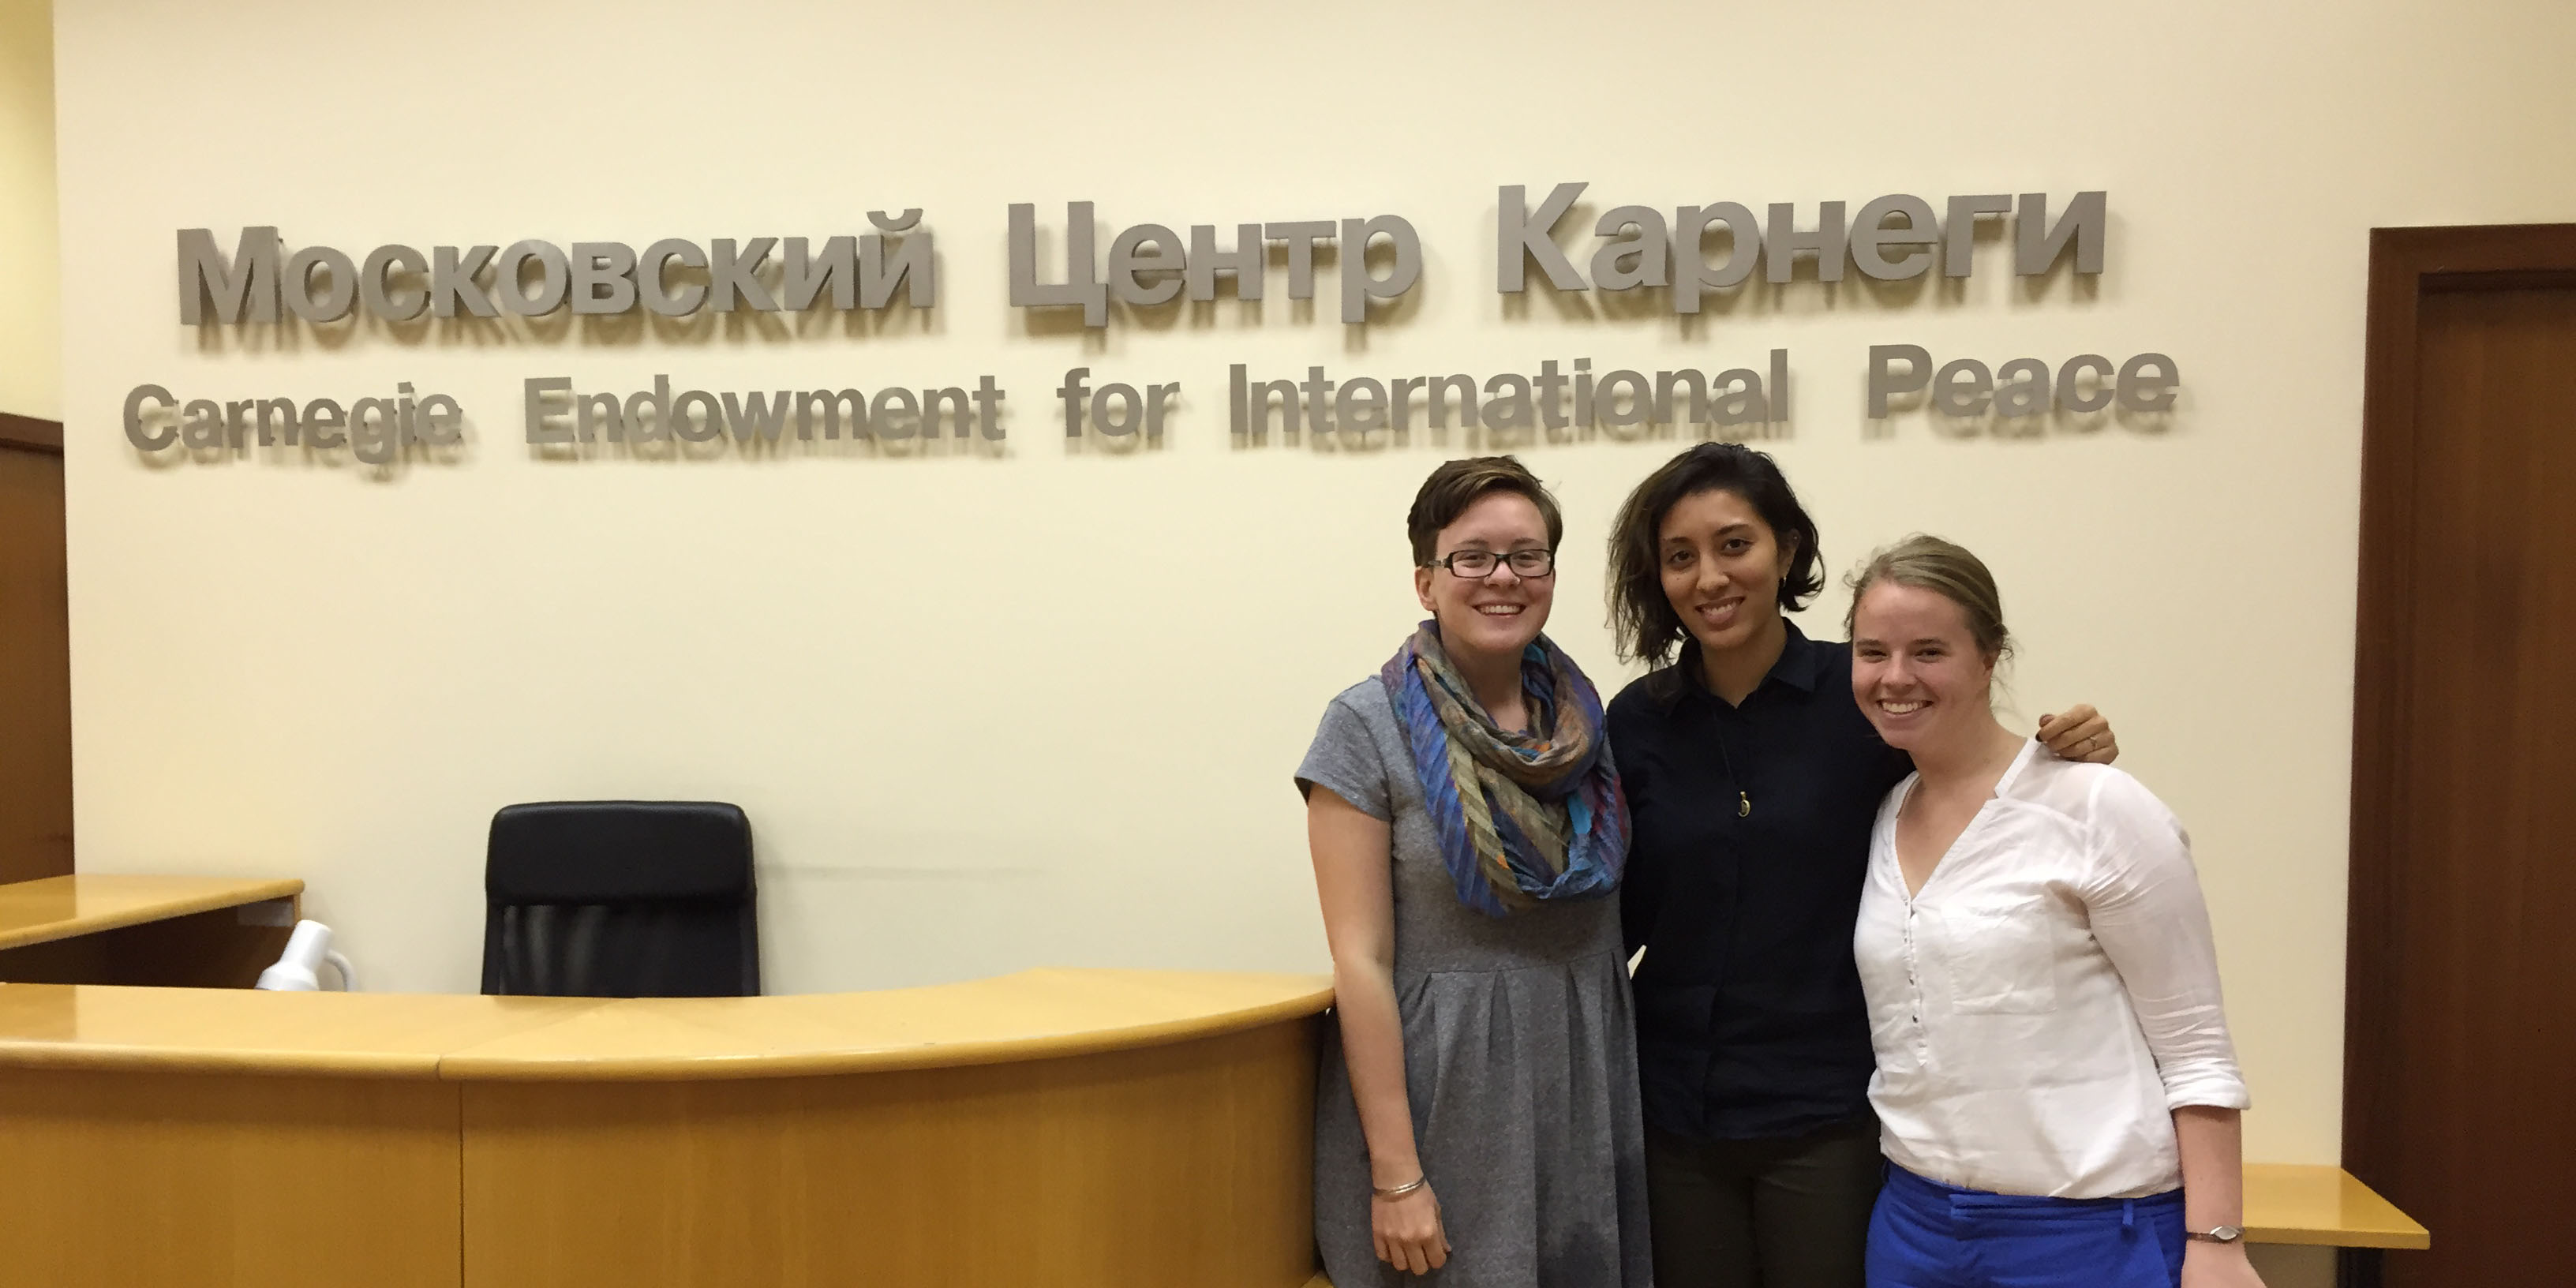 Meg McClure '15 (L), Amanda Trabulsi '16 (C), and one of their coworkers at the Carnegie Center Moscow.